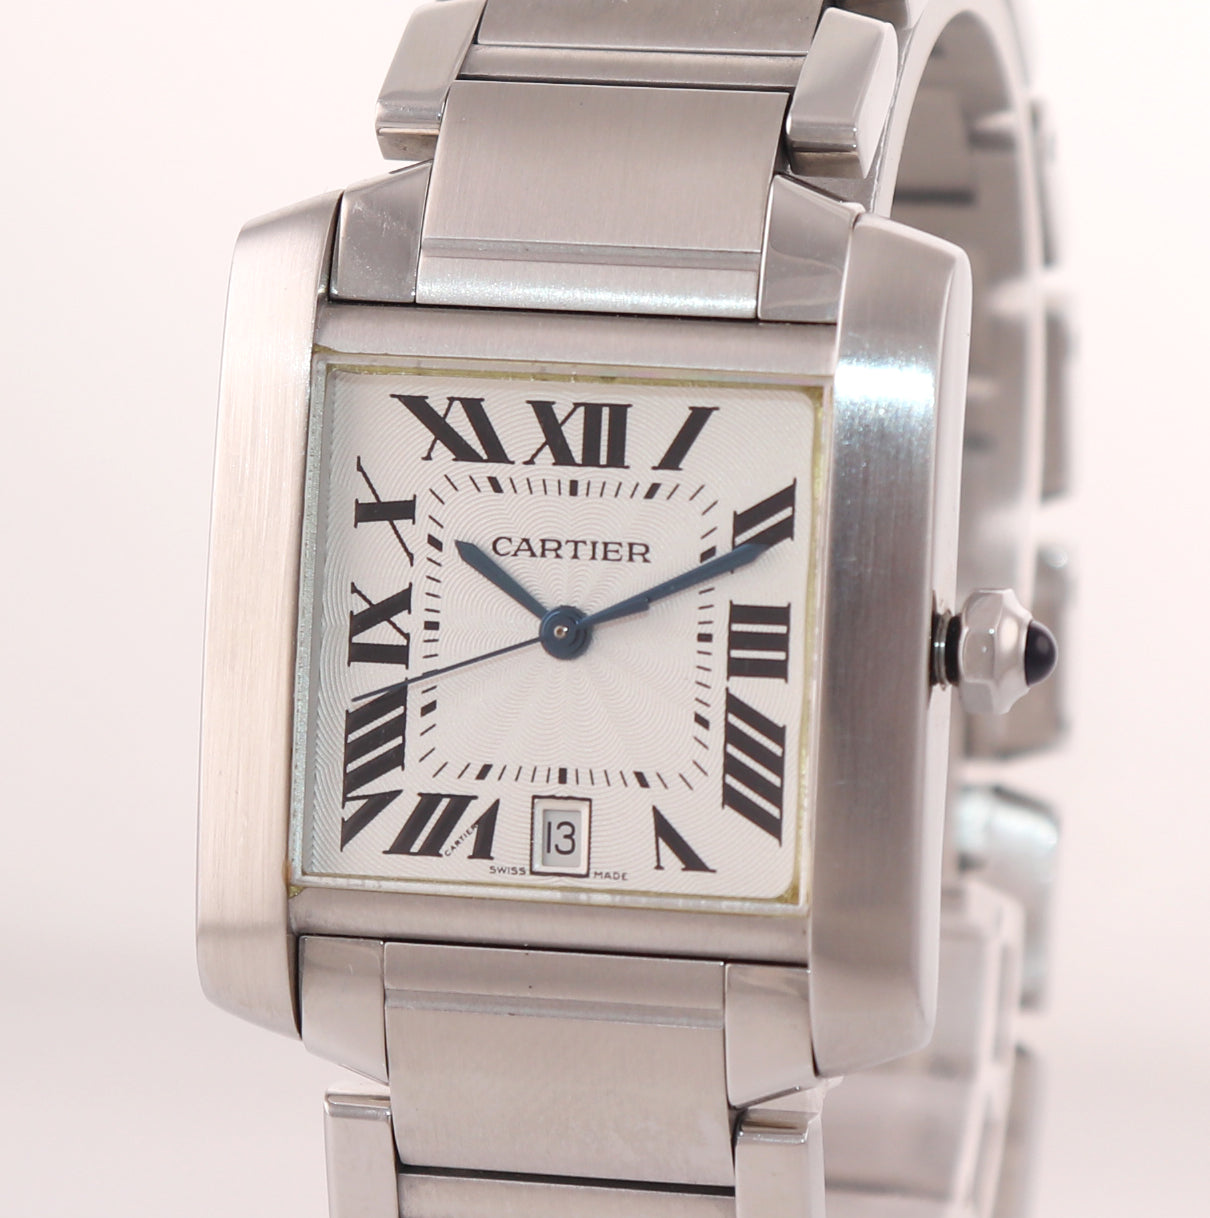 Cartier Tank Francaise Full-Size Automatic Steel Date Watch W51002Q3 2302